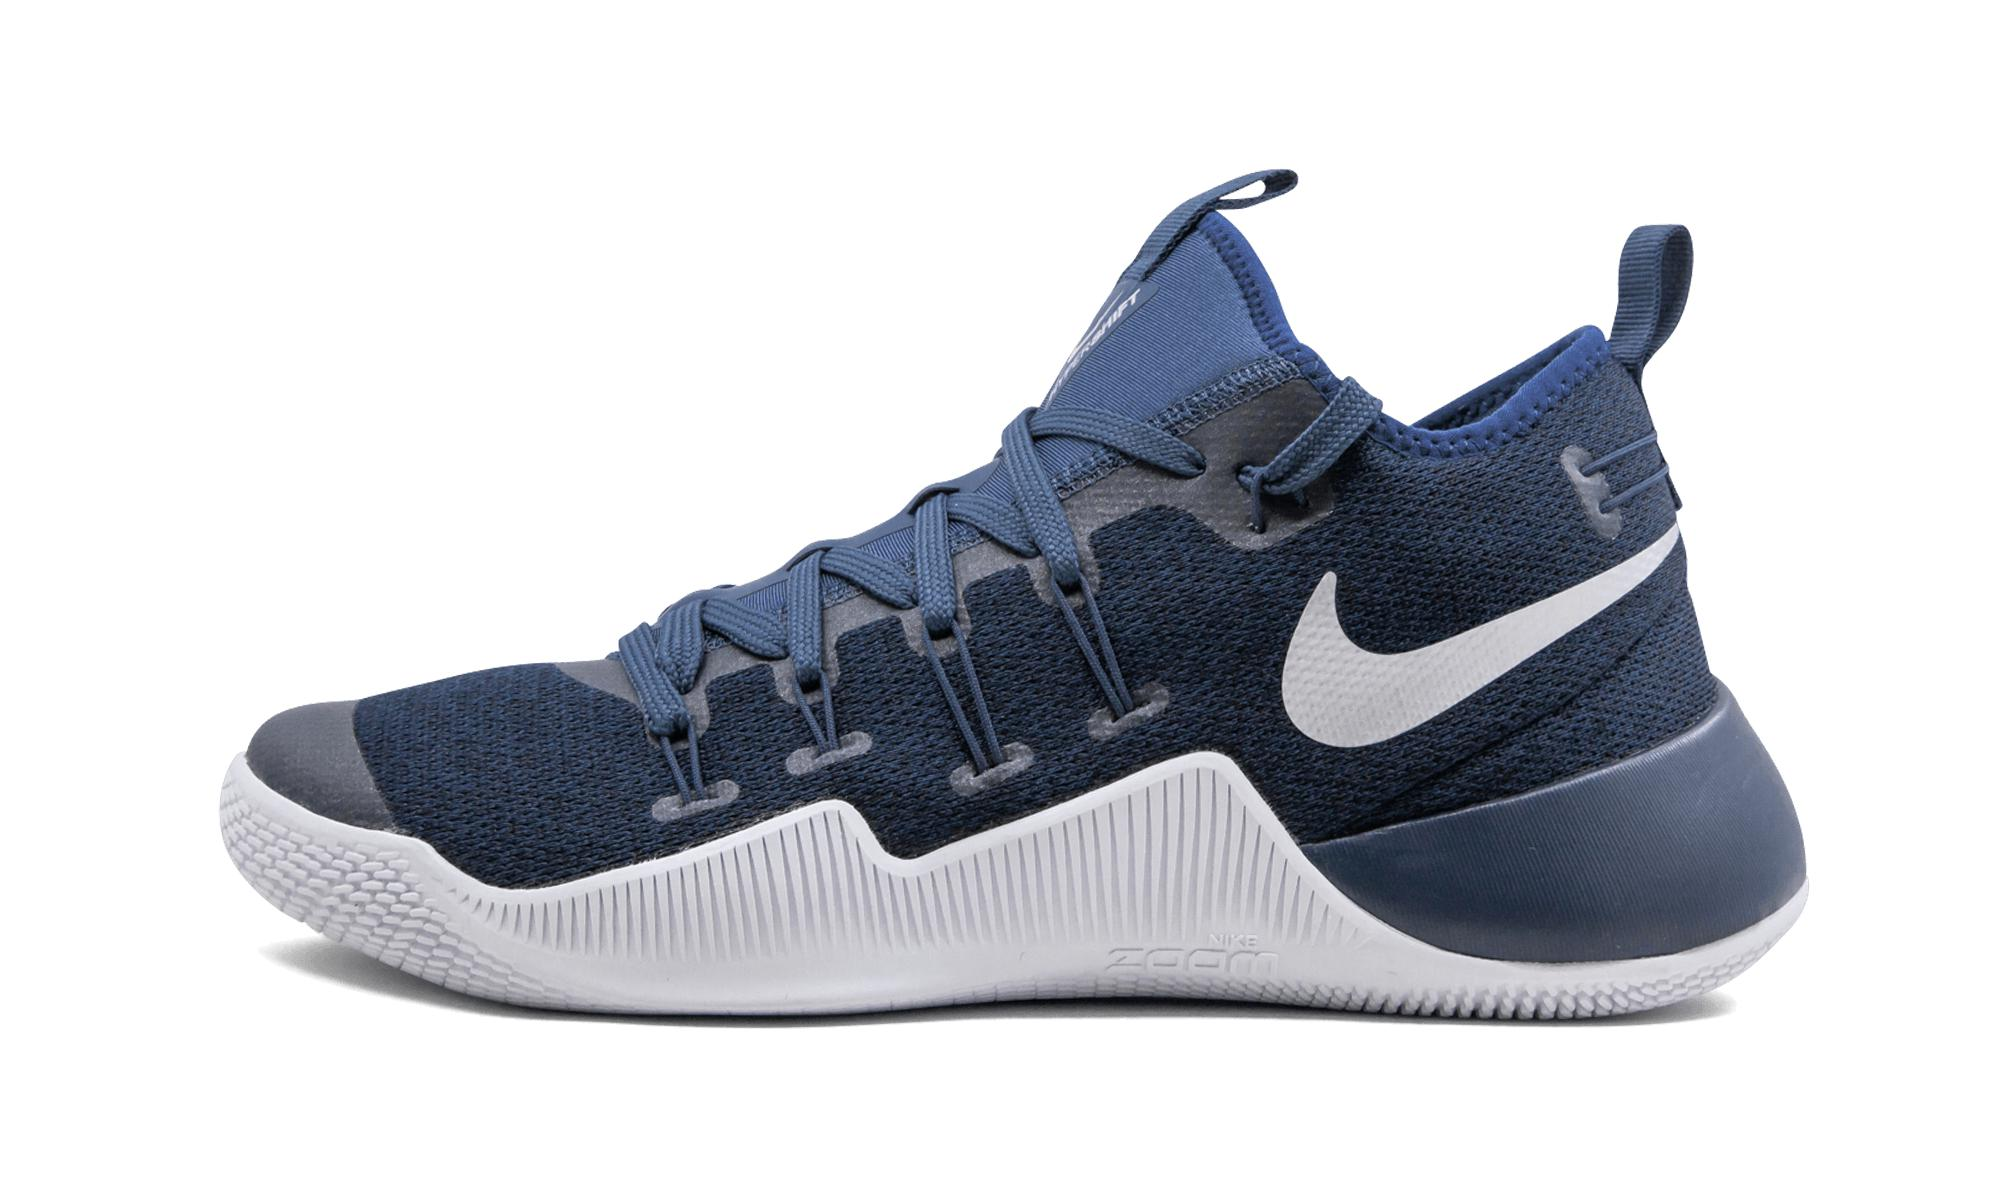 2a2916100901 promo code for nike hypershift high tops for education 2772d 6acf3